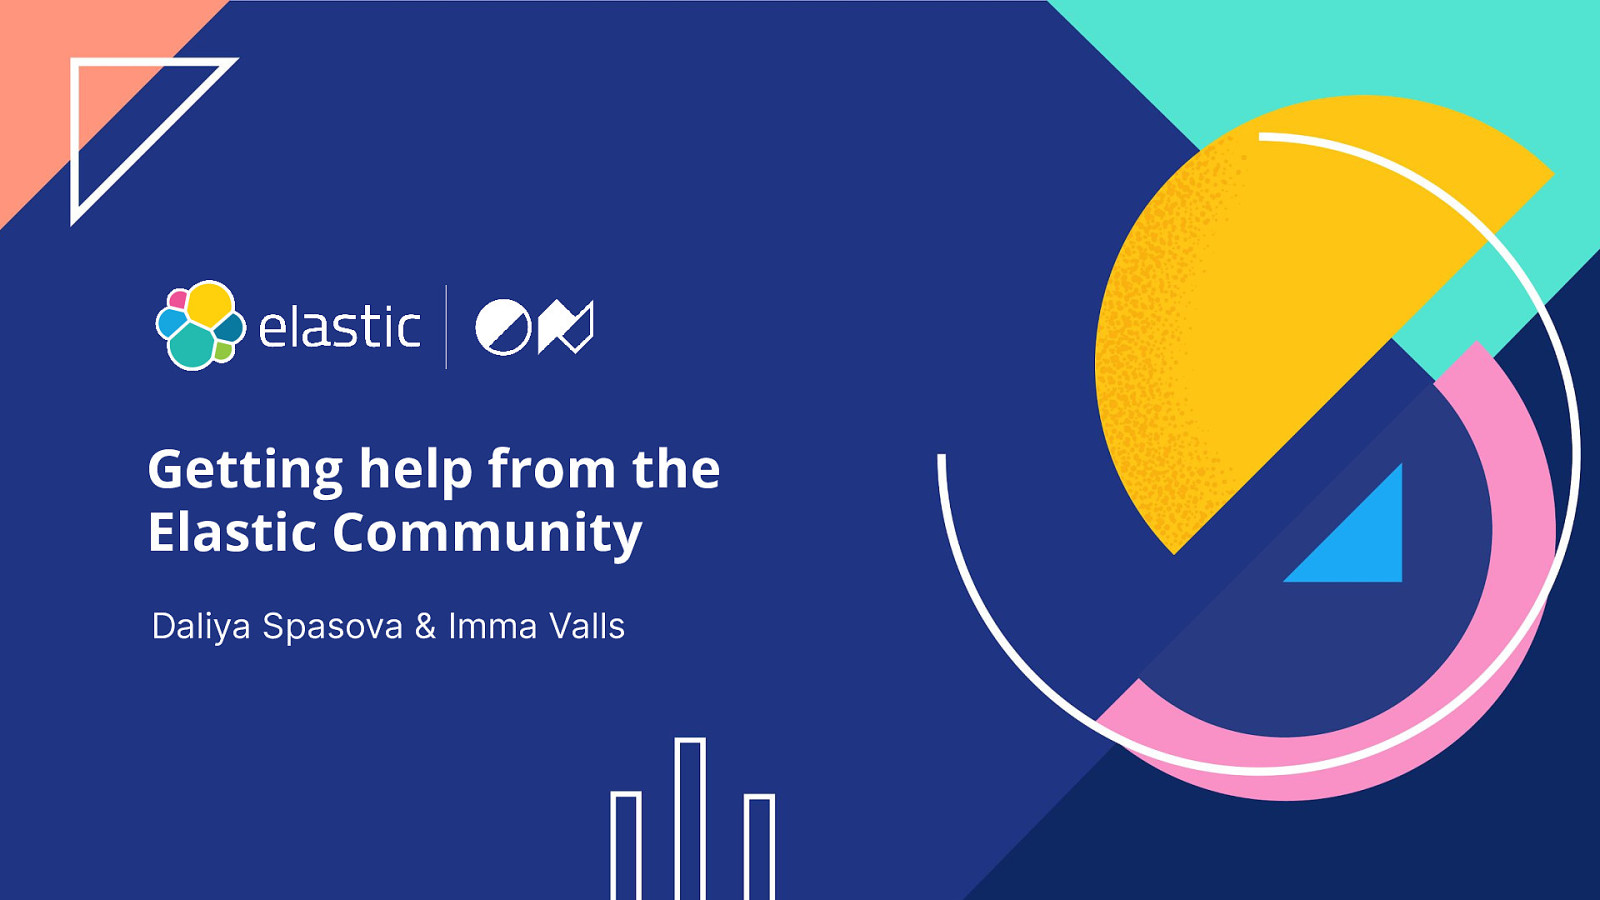 Getting help from the Elastic Community